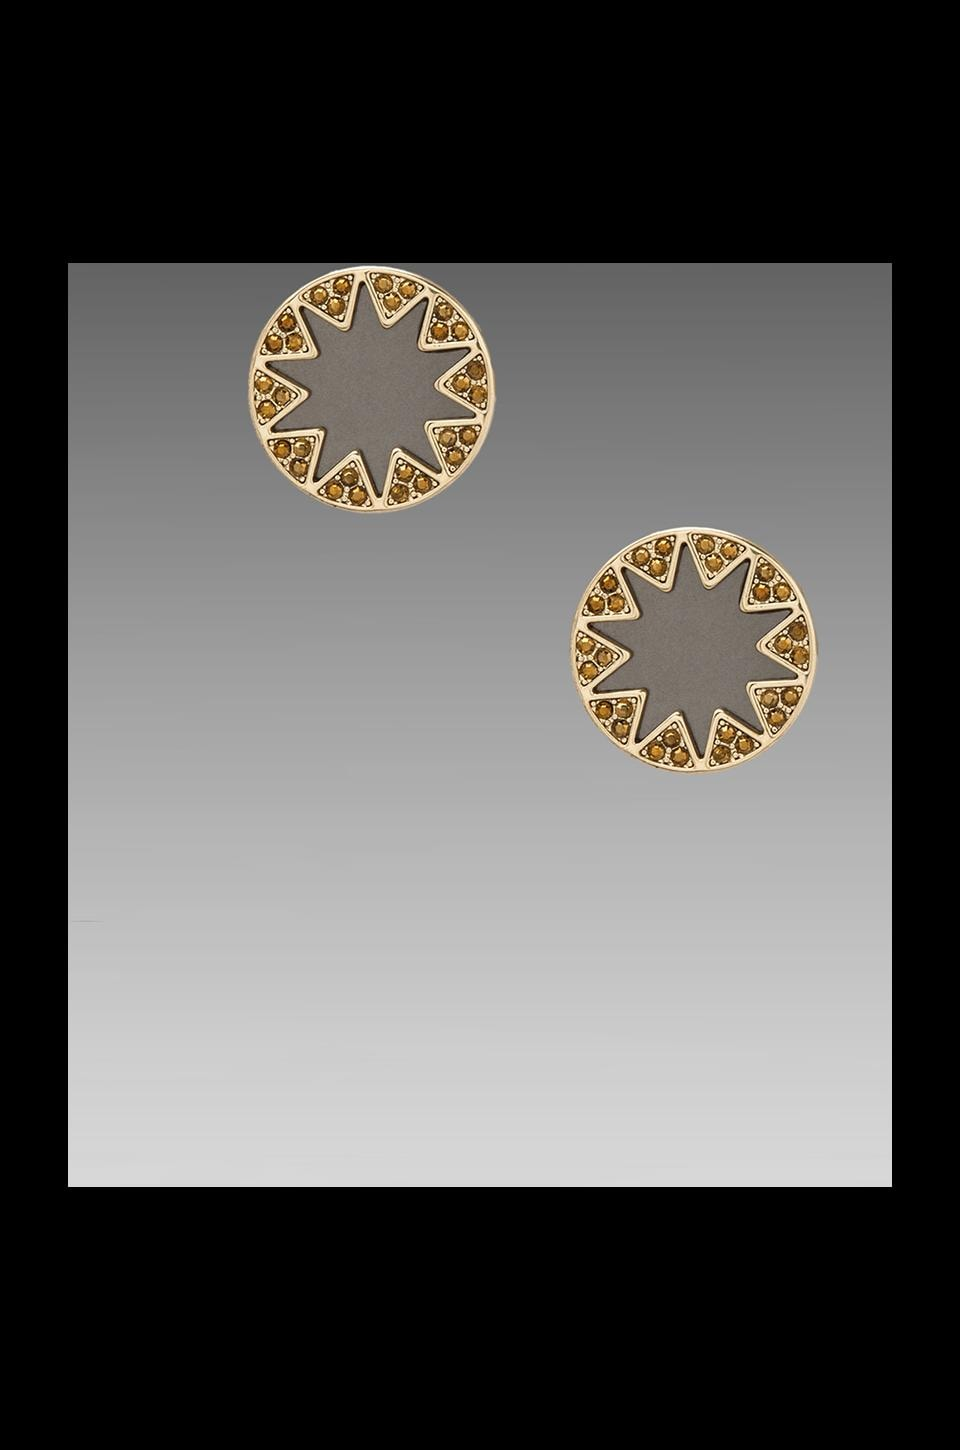 House of Harlow Earth Metal Sunburst Stud Earrings in Gold/Black